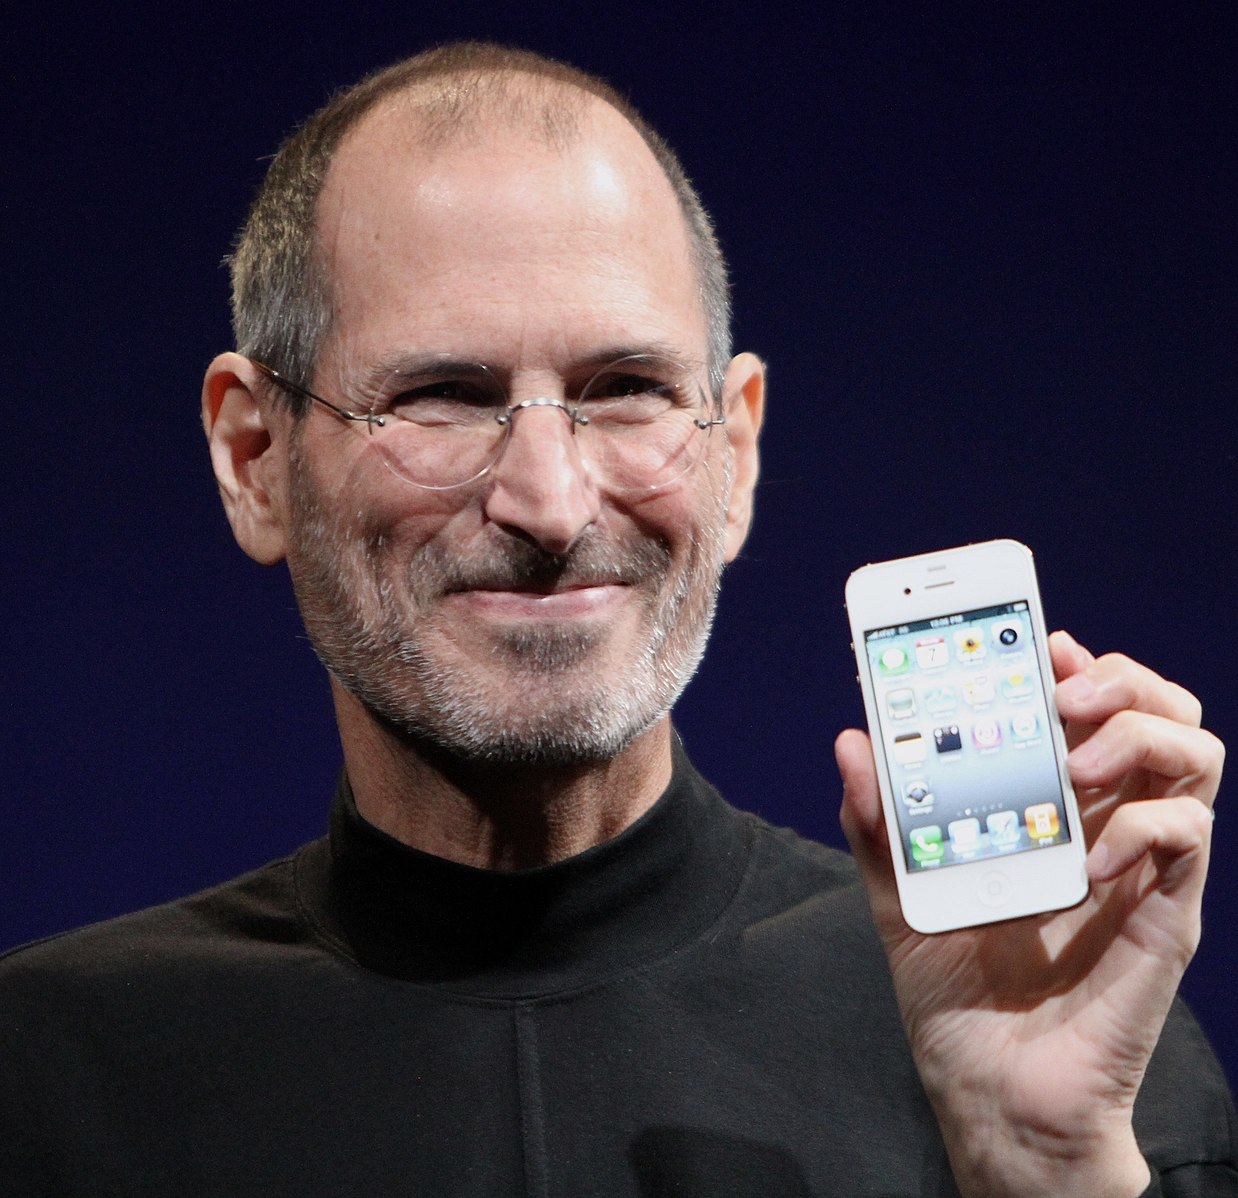 Steve Jobs, an extremely Charismatic Leader